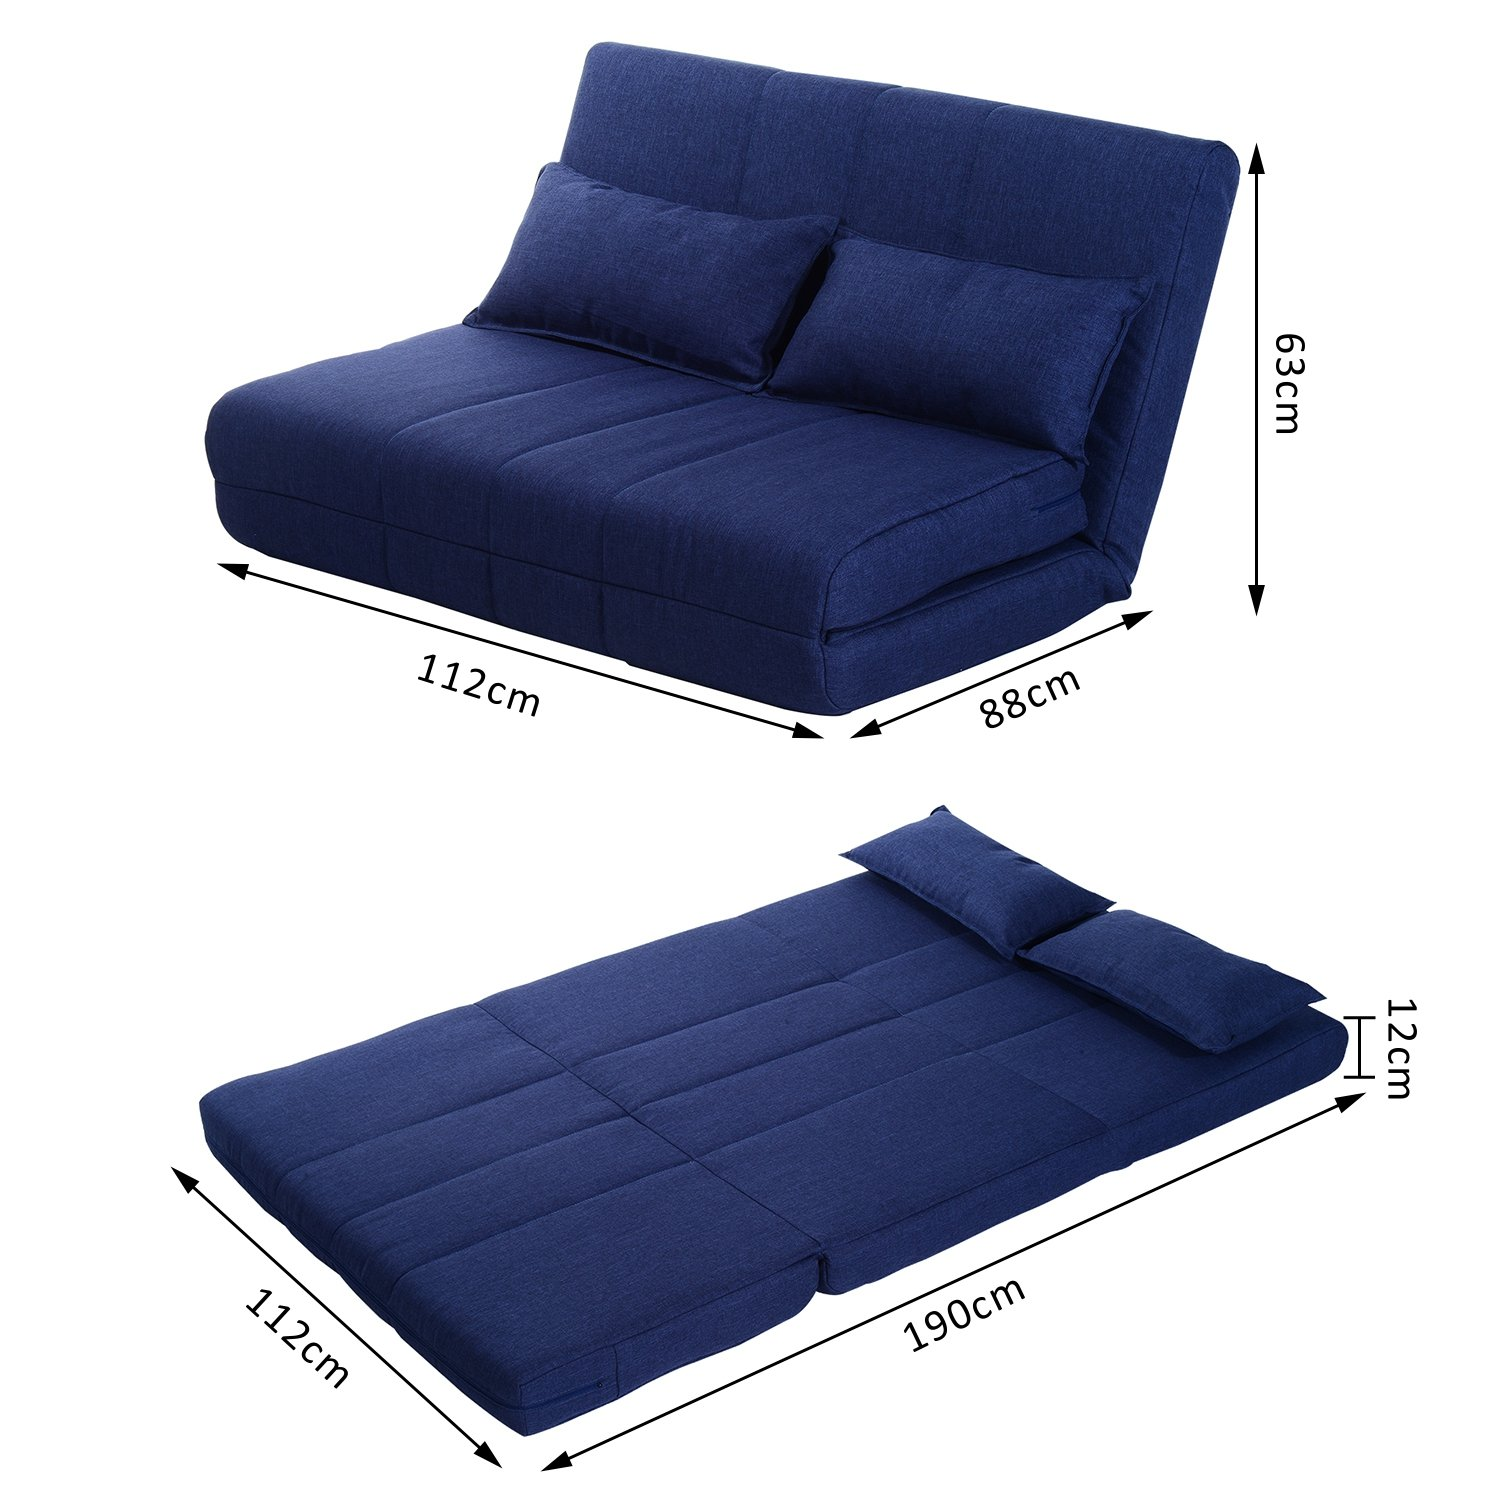 wooden instructions mattress and amazon ikea frame futon parts sale platm wood set for